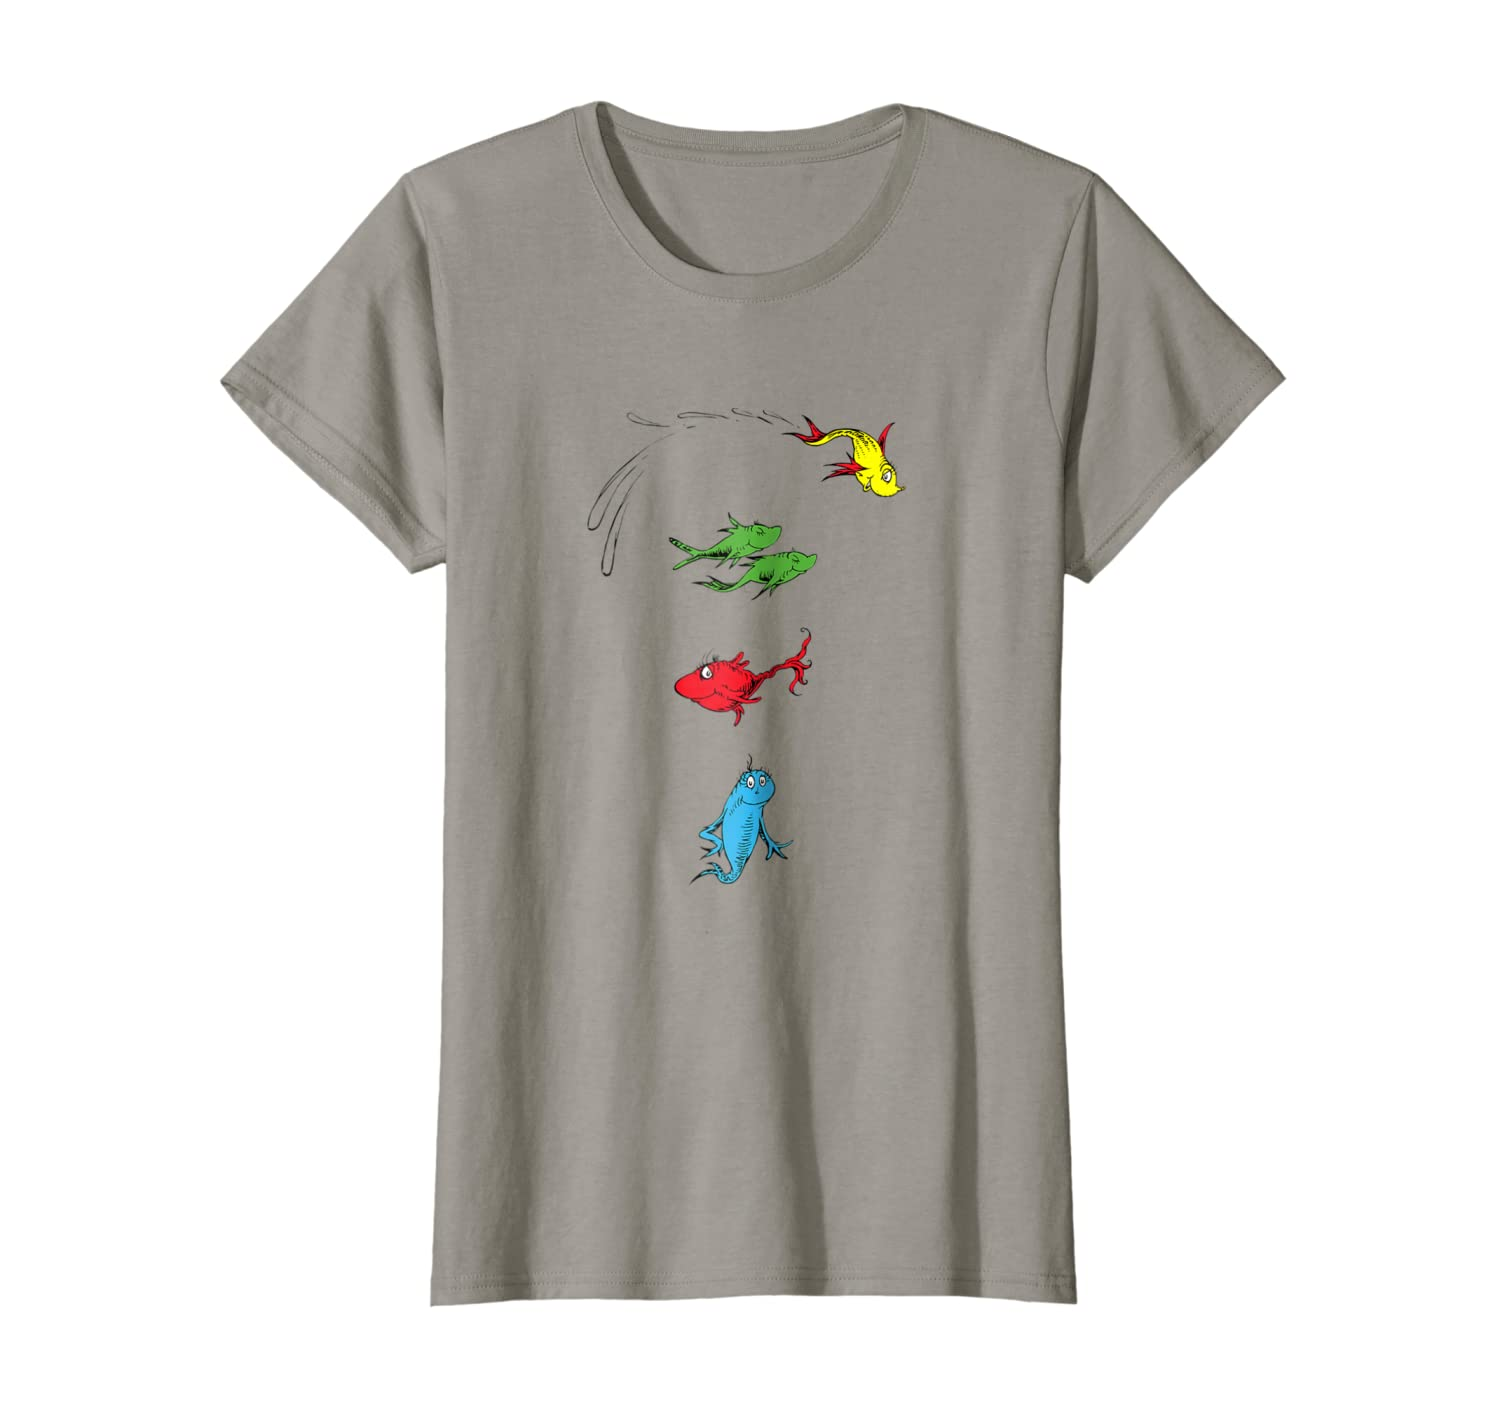 e7f79dff6 Amazon.com: Dr. Seuss One Fish Two Fish Red Fish Blue Fish T-shirt: Clothing